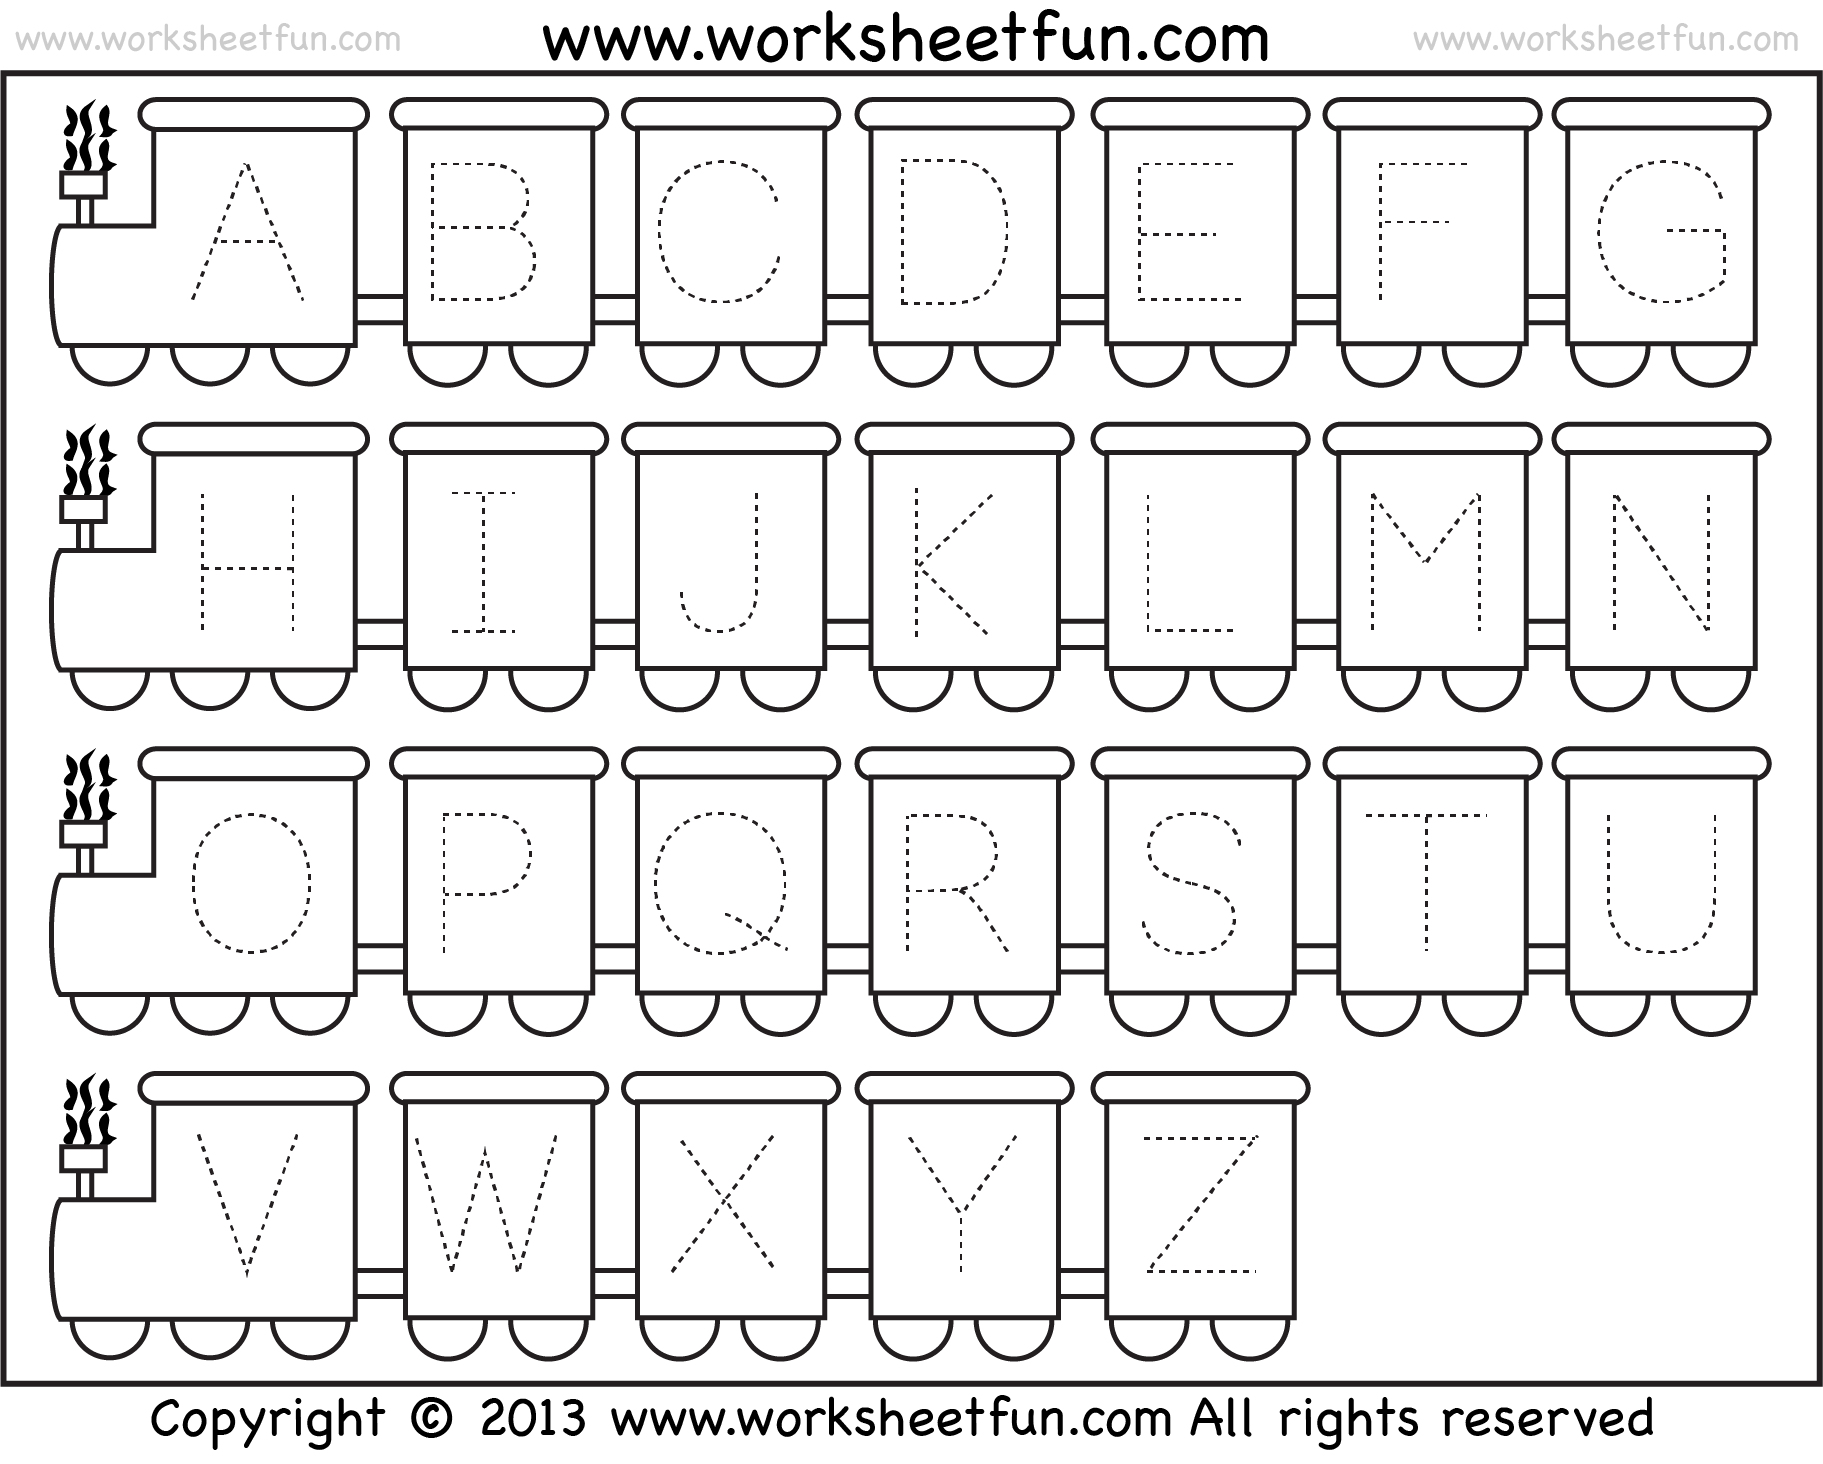 Free Kindergarten Alphabet Worksheets Davezan – Free Alphabet Worksheets for Kindergarten